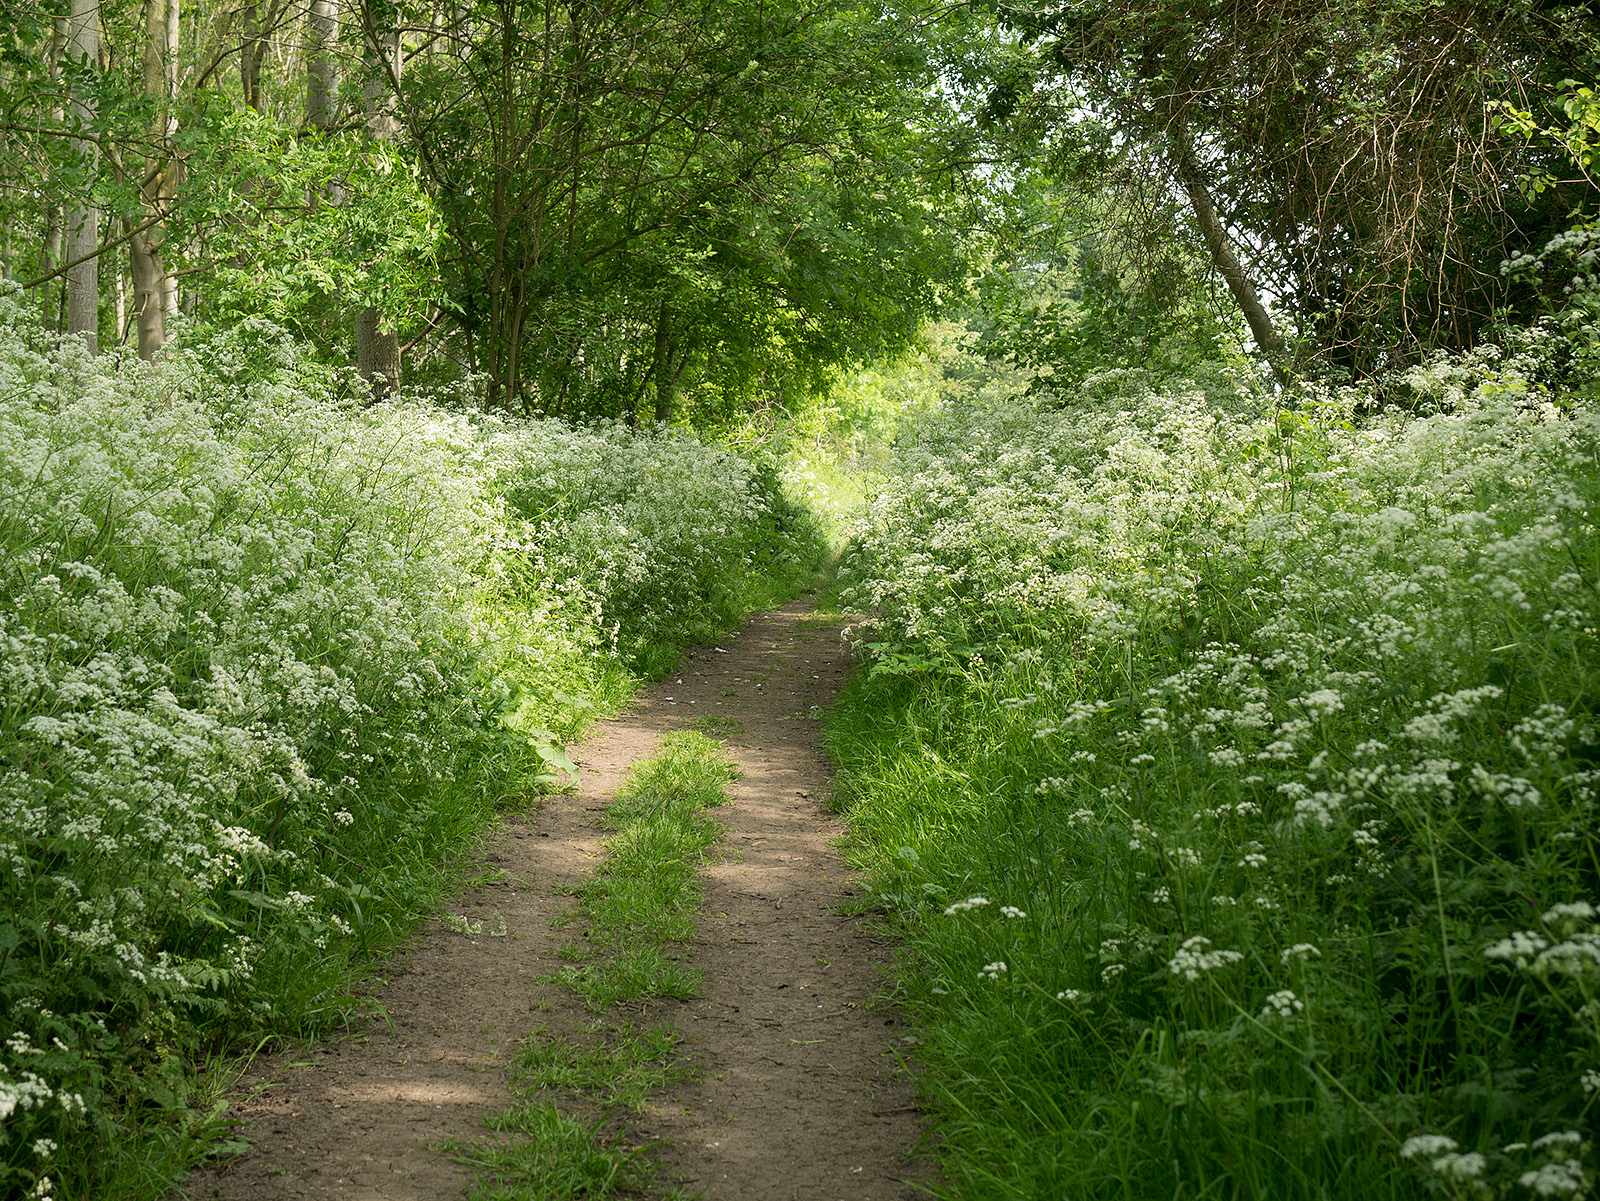 Cow parsley adorns the path